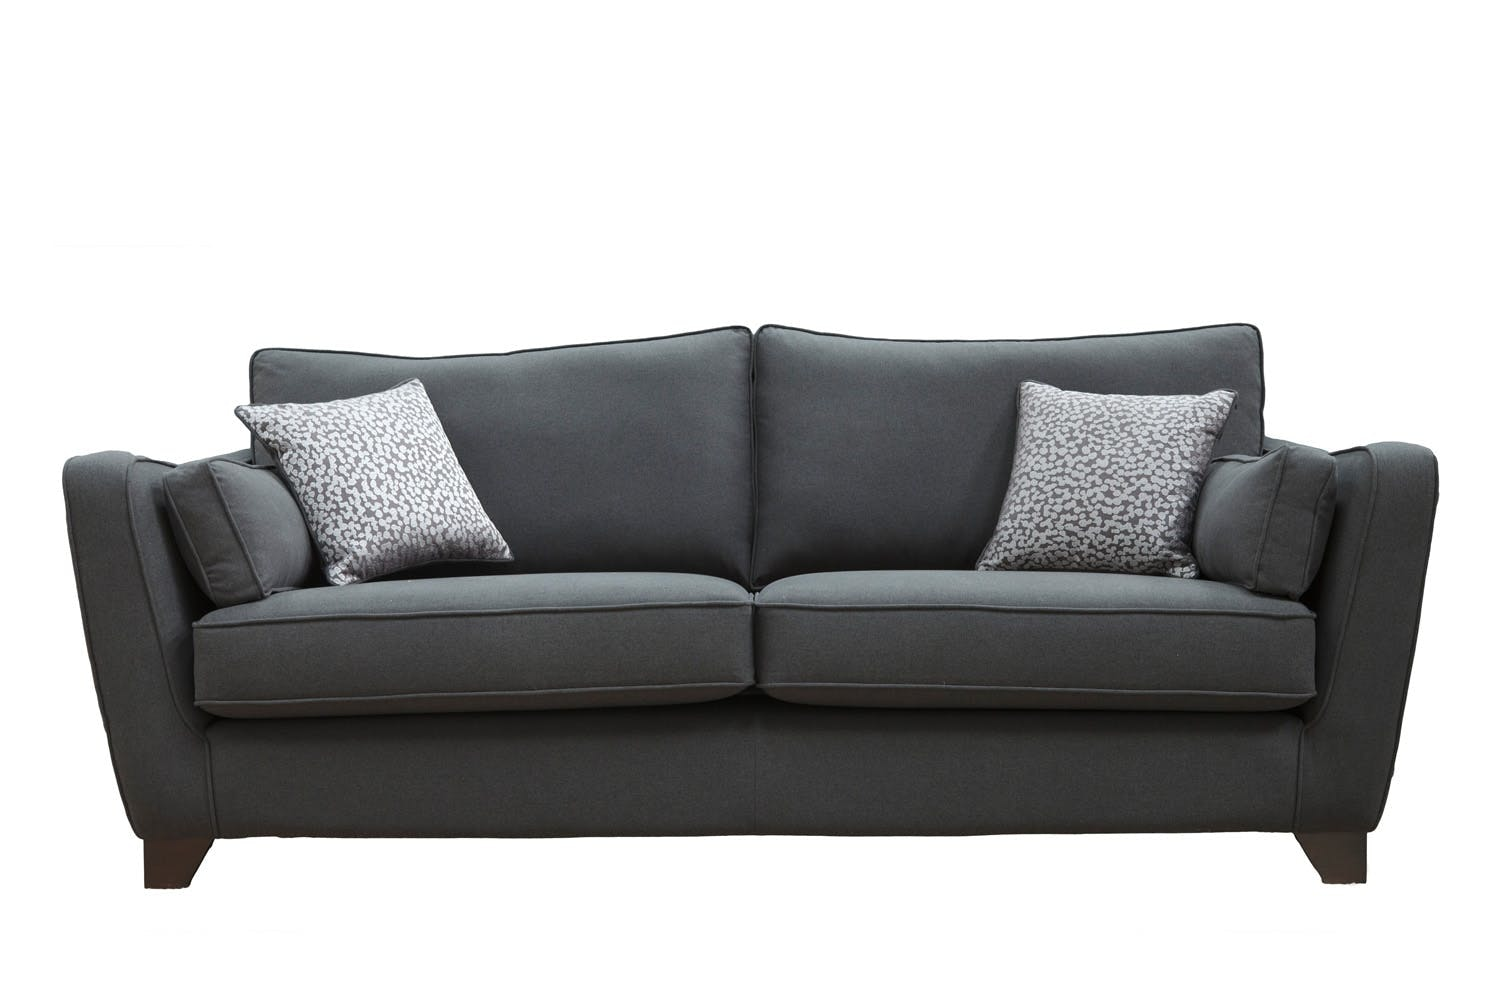 Crystal 3 Seater Sofa